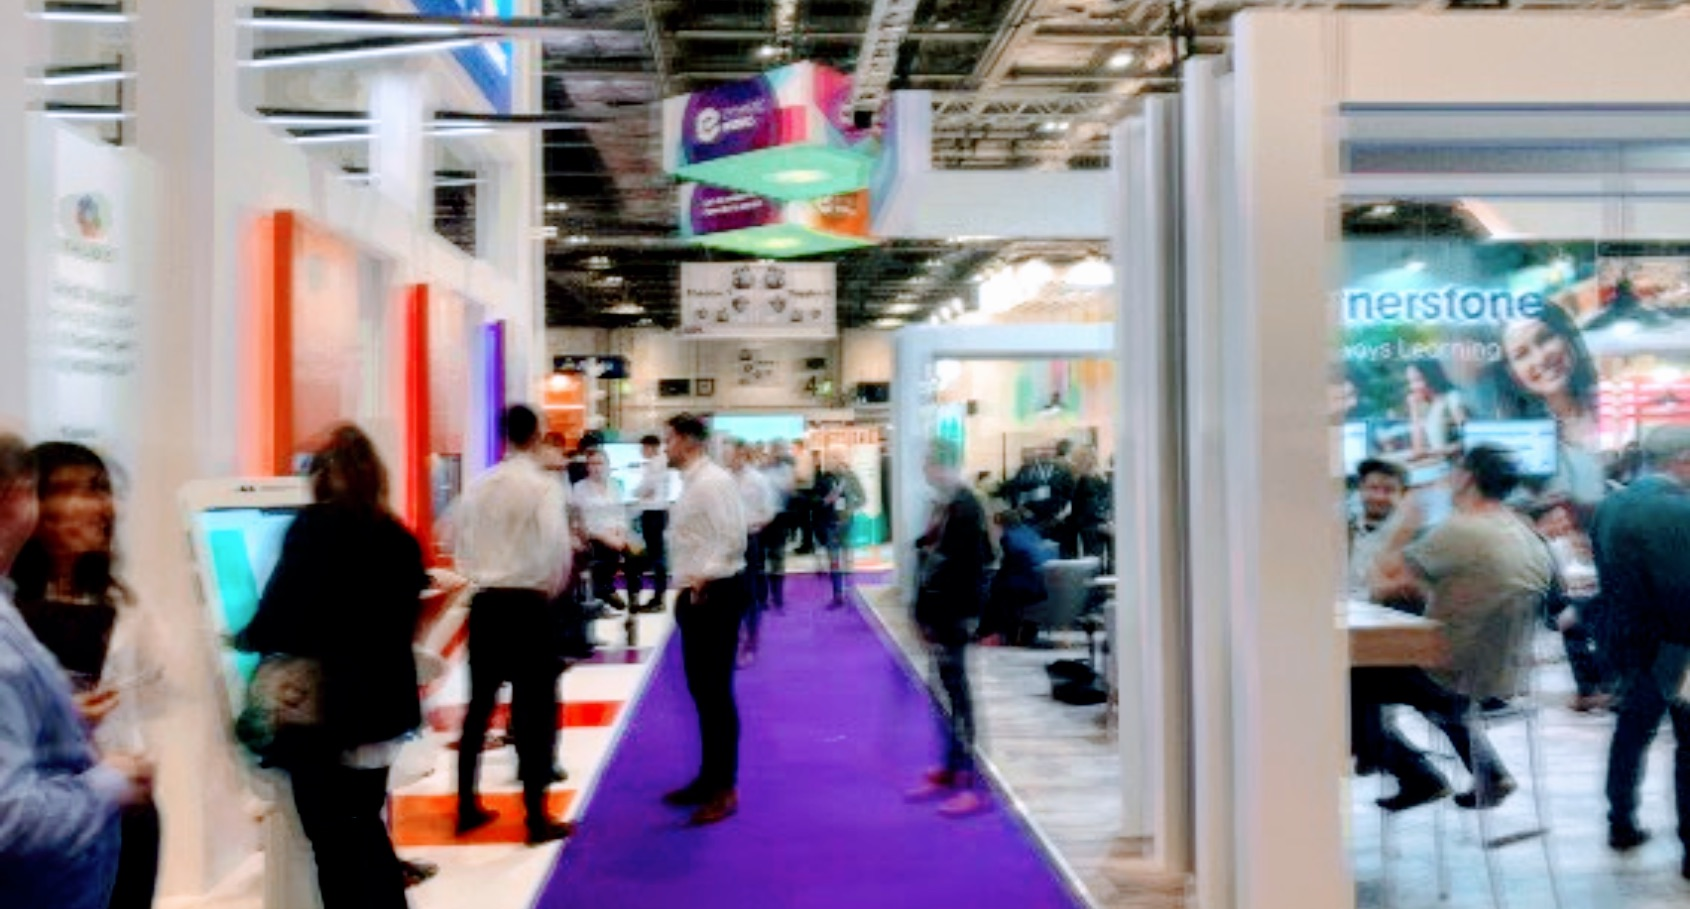 Long exposure image of the Learning Technologies exhibition hall at Excel